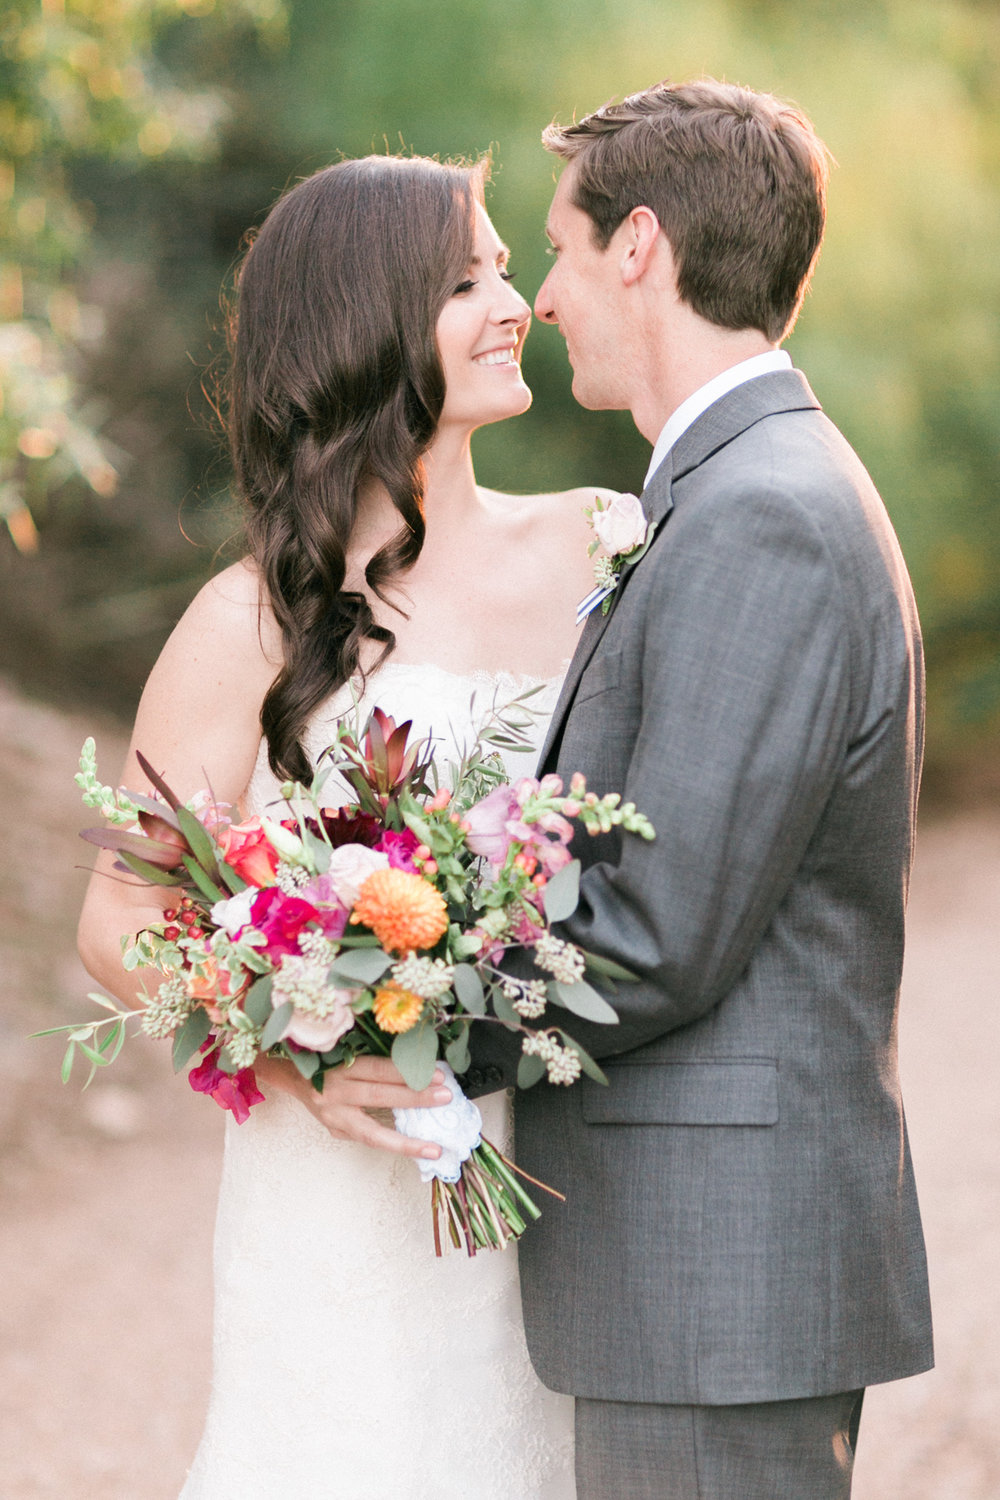 Gorgeous bride and groom about to kiss captured by Phoenix wedding photographers, Betsy & John